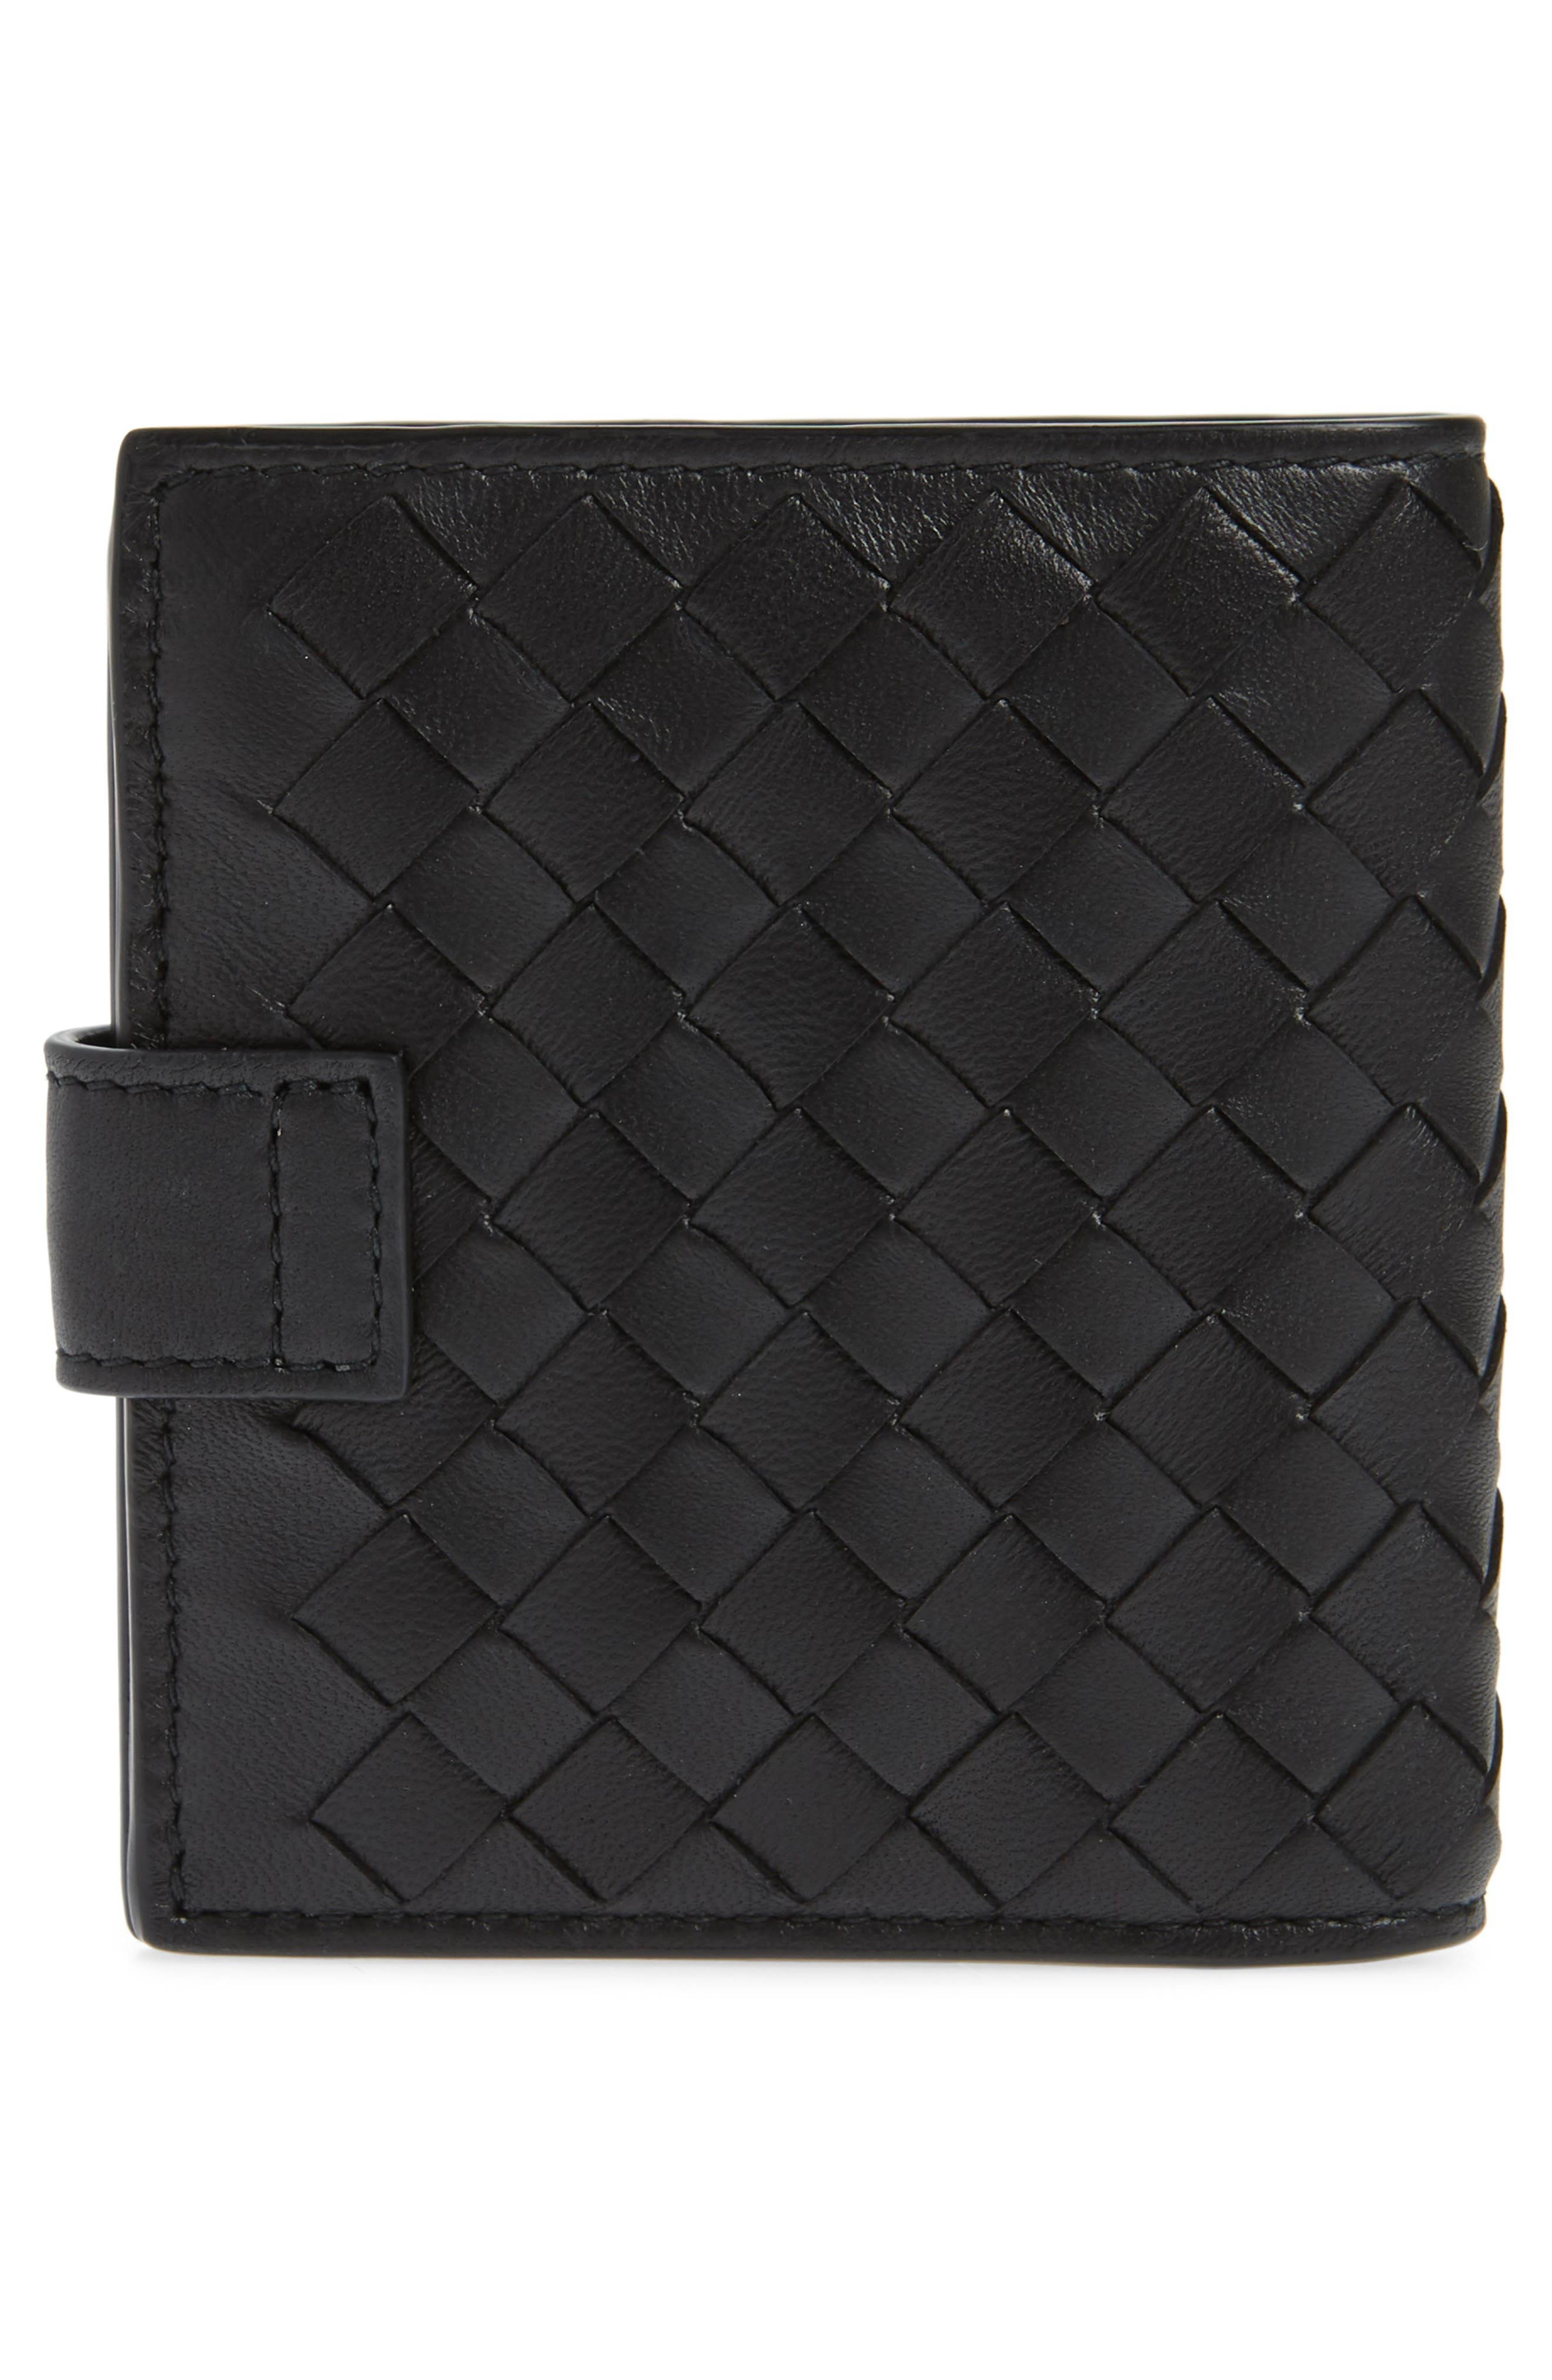 Intrecciato Leather French Wallet,                             Alternate thumbnail 4, color,                             BLACK